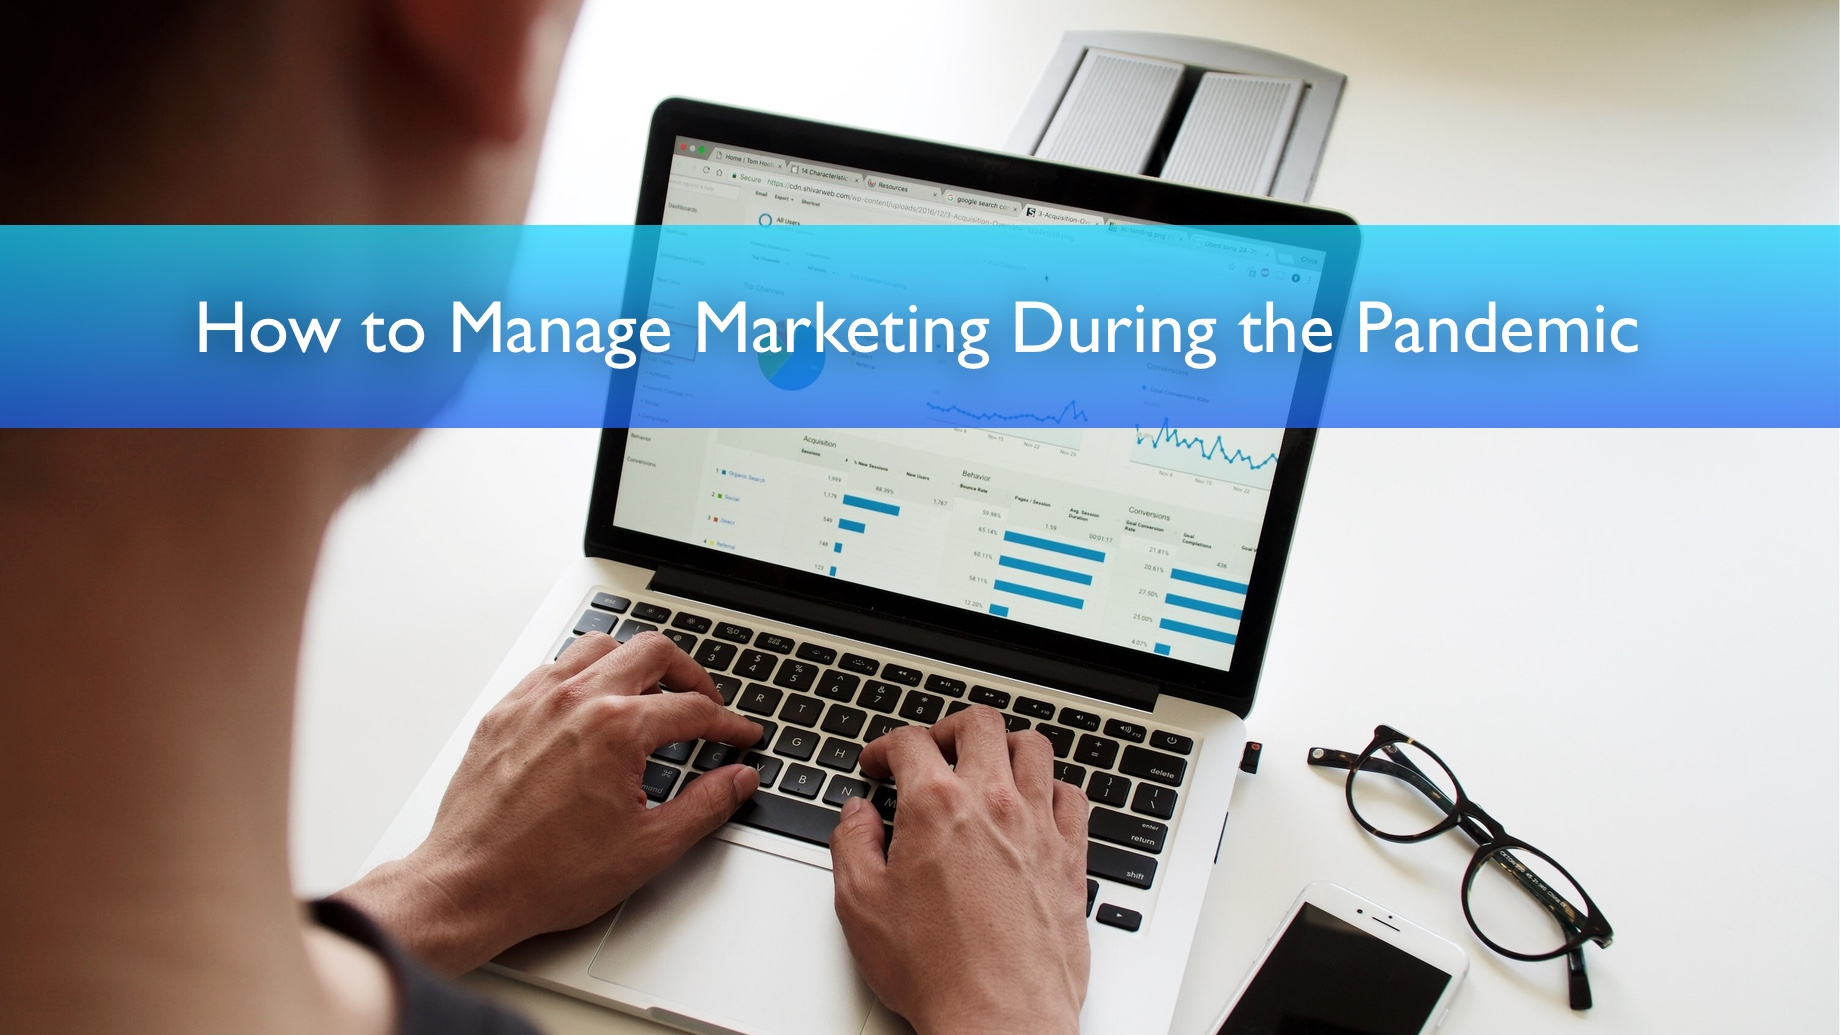 How to Manage Marketing During the Pandemic